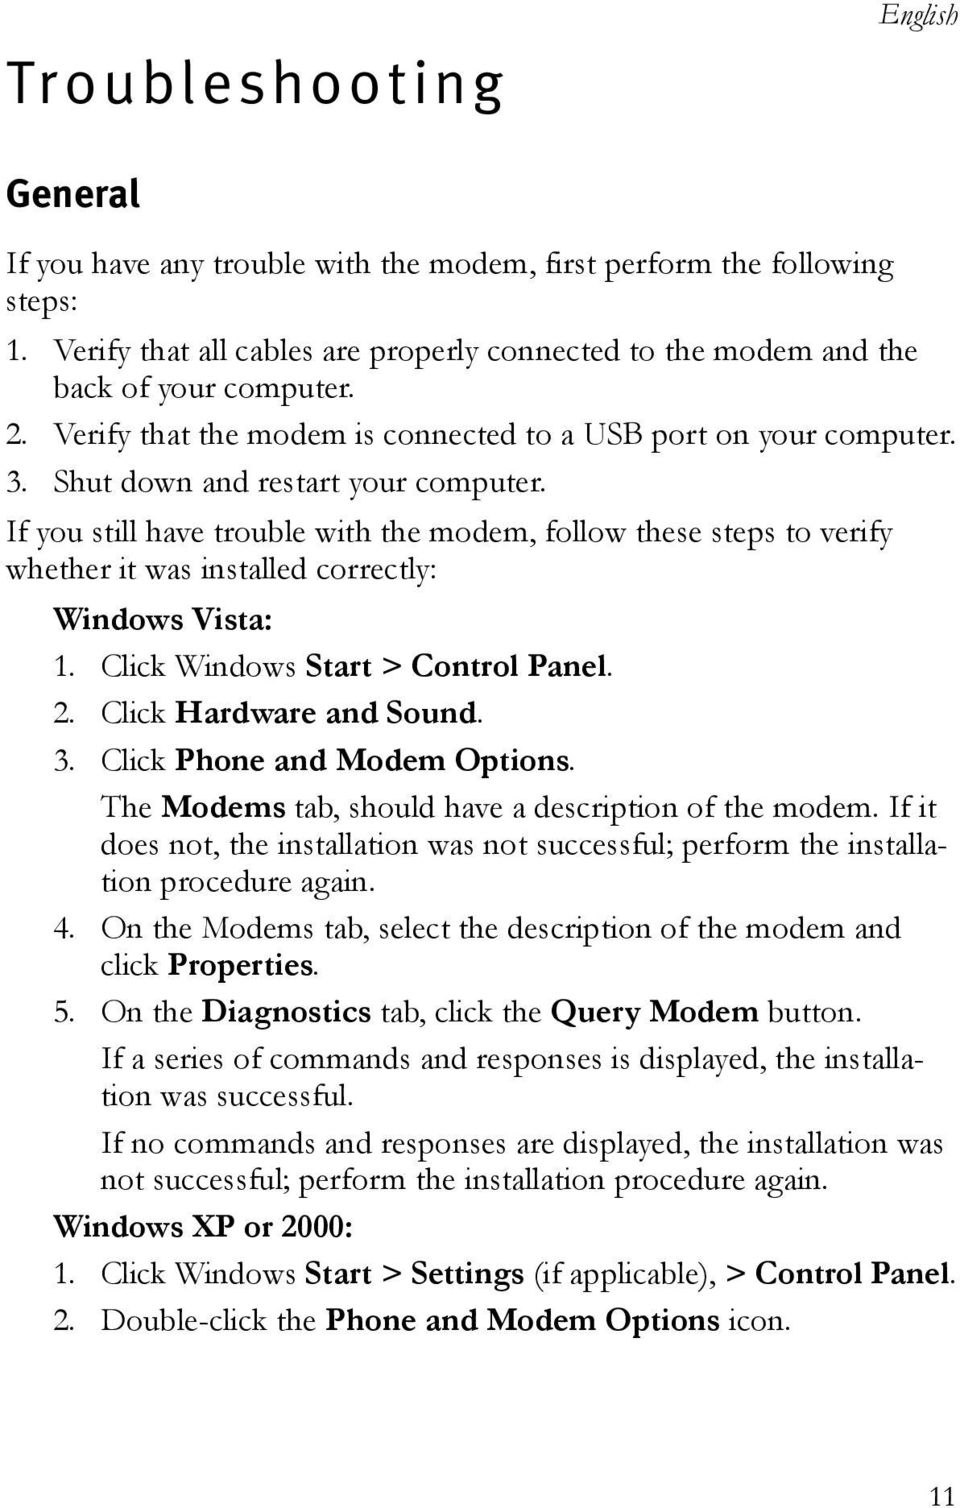 If you still have trouble with the modem, follow these steps to verify whether it was installed correctly: Windows Vista: 1. Click Windows Start > Control Panel. 2. Click Hardware and Sound. 3.